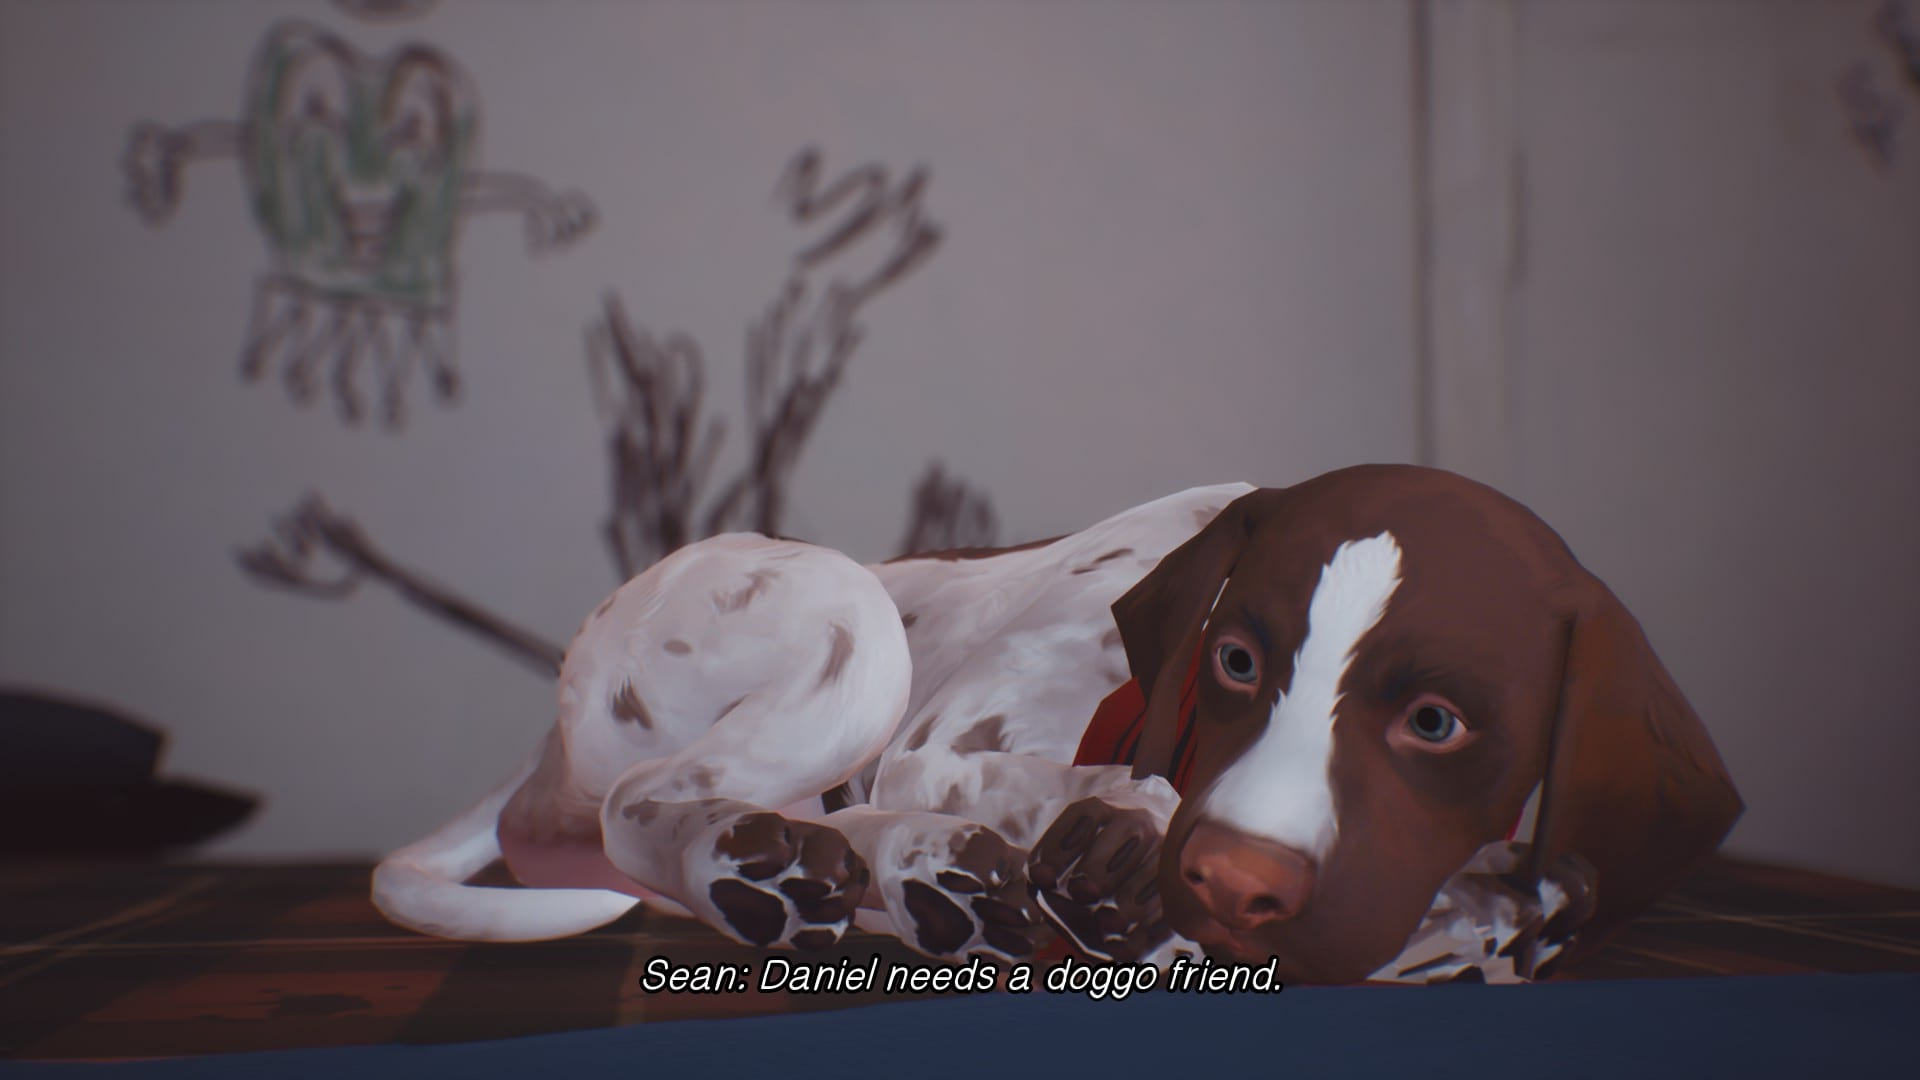 Life is Strange 2 Doggo